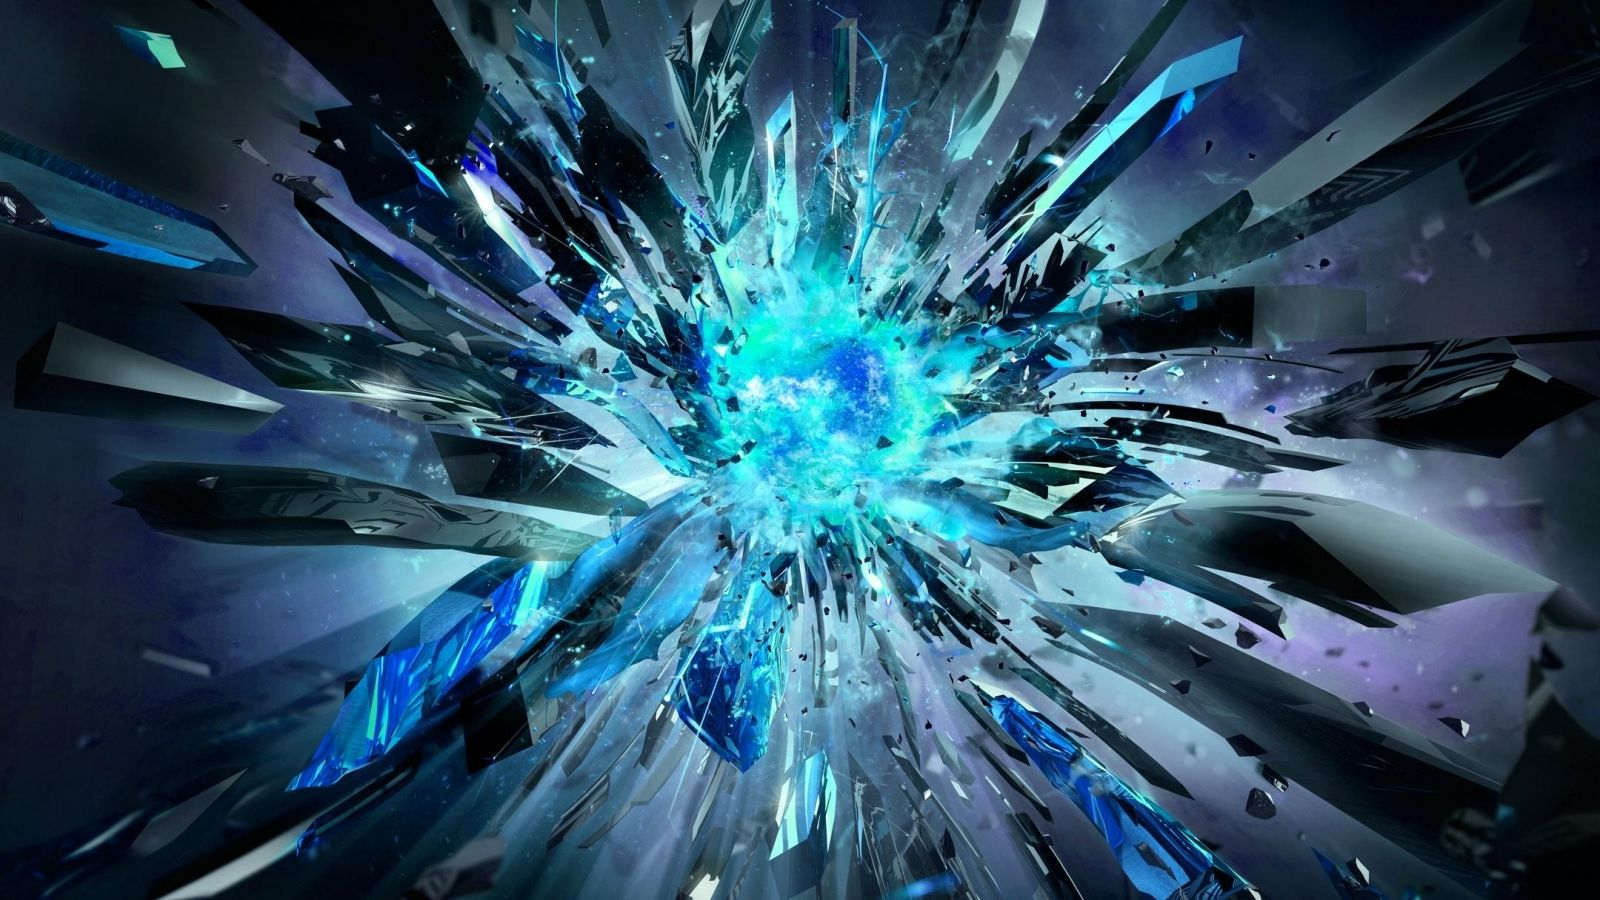 Download Blue Core Explosion Wallpaper In 3d Abstract Wallpapers Abstract Wallpaper Abstract Desktop Backgrounds Abstract Images